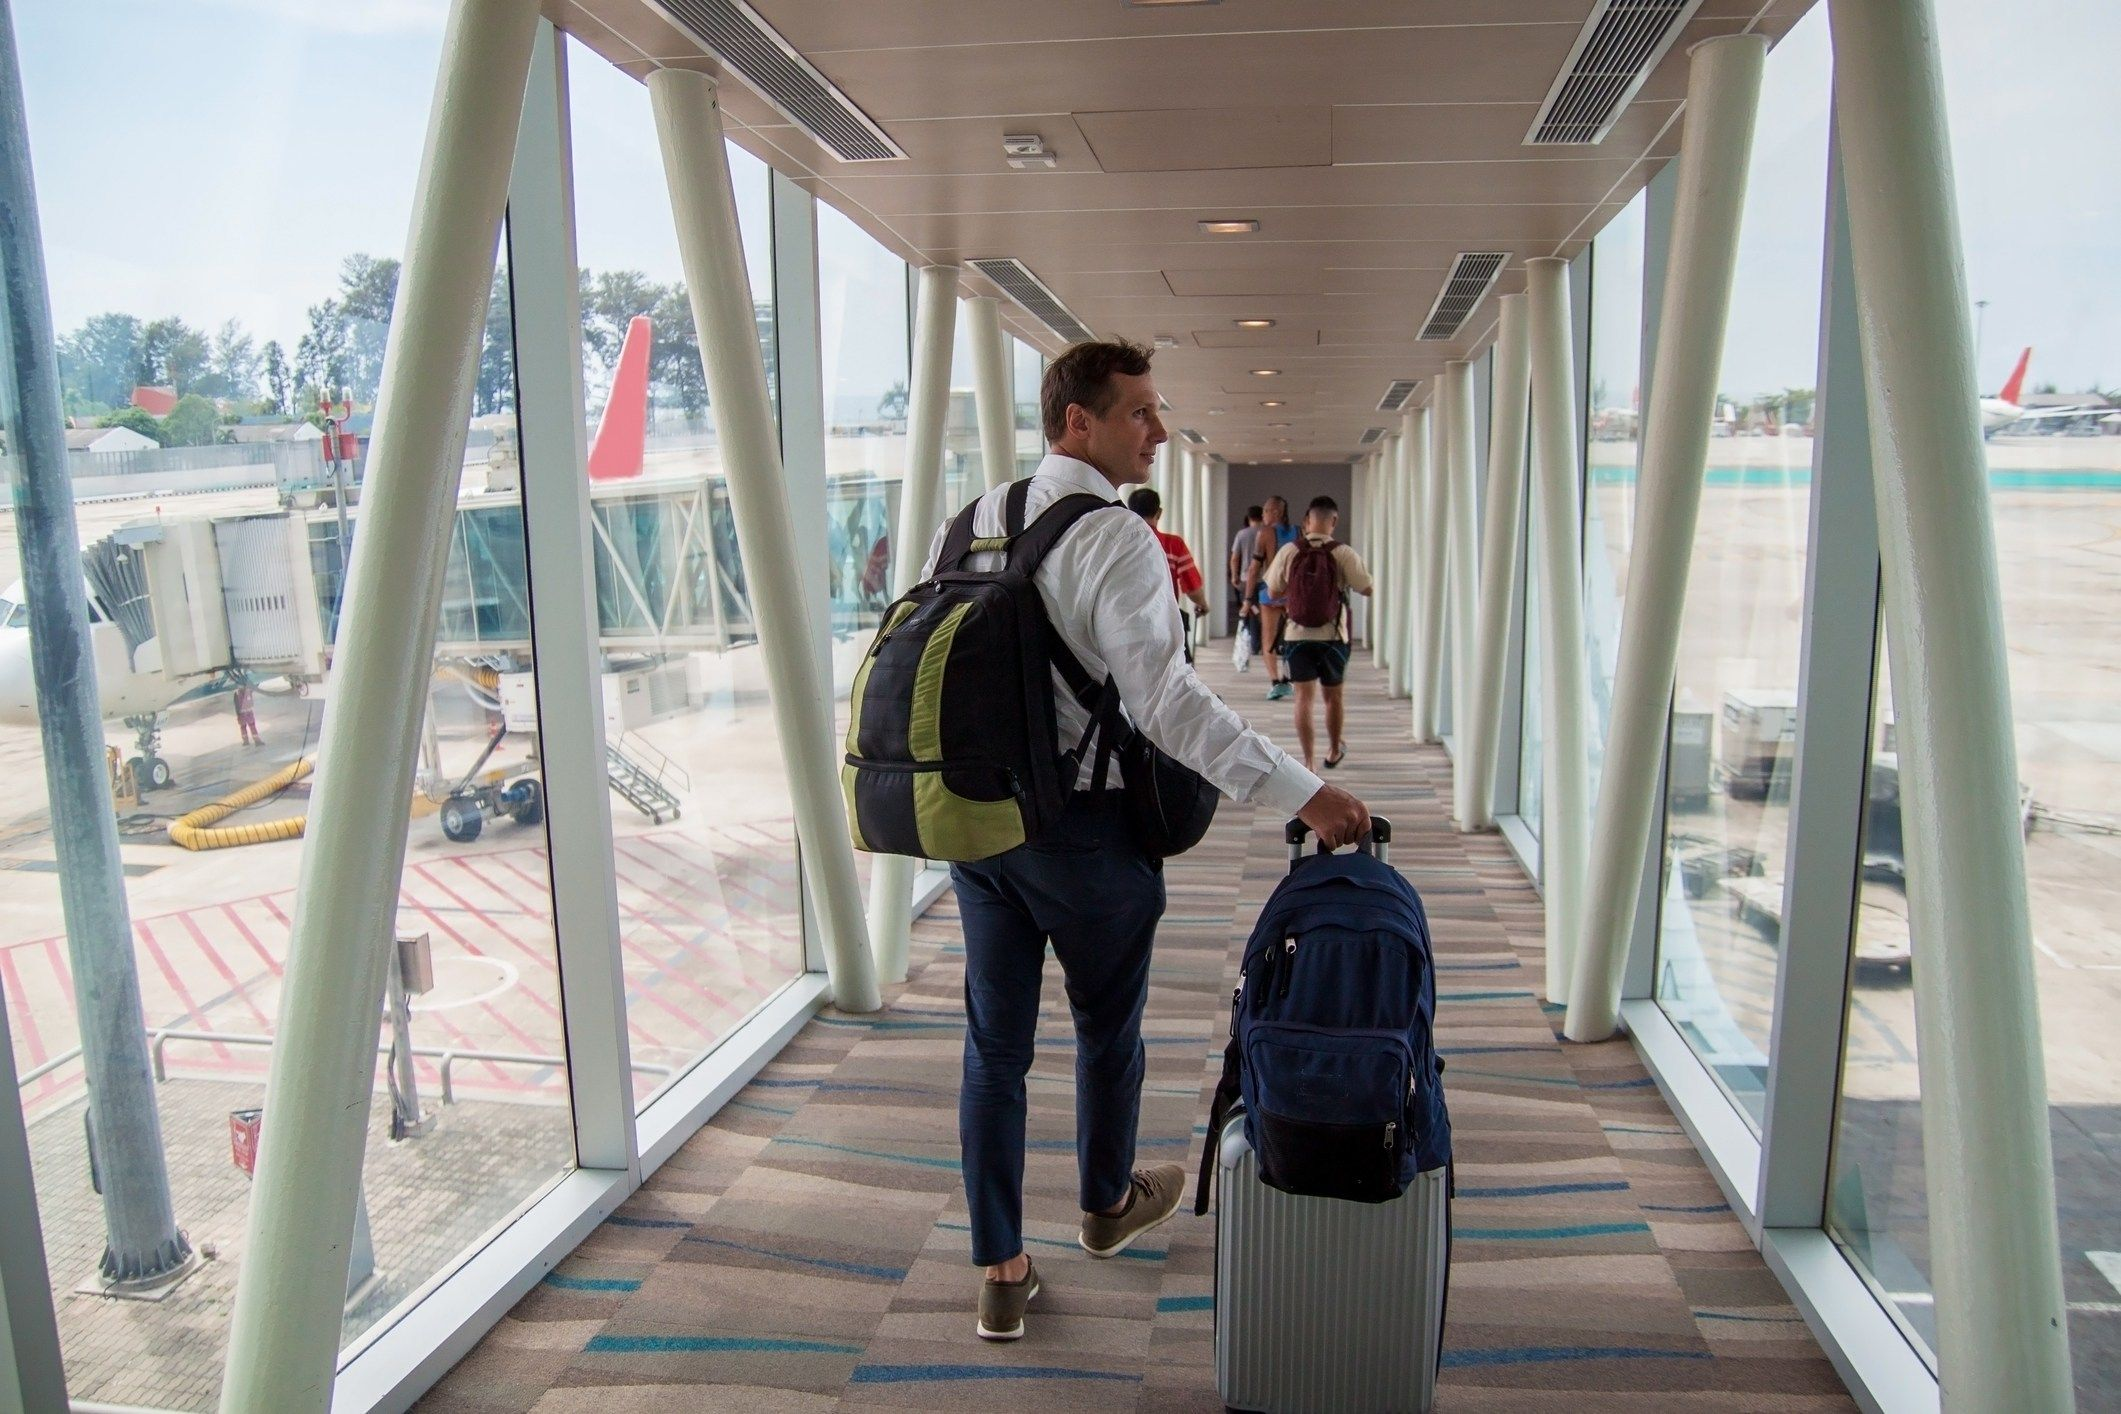 Carryon bag rules at 10 big U.S. airlines Carry on bag